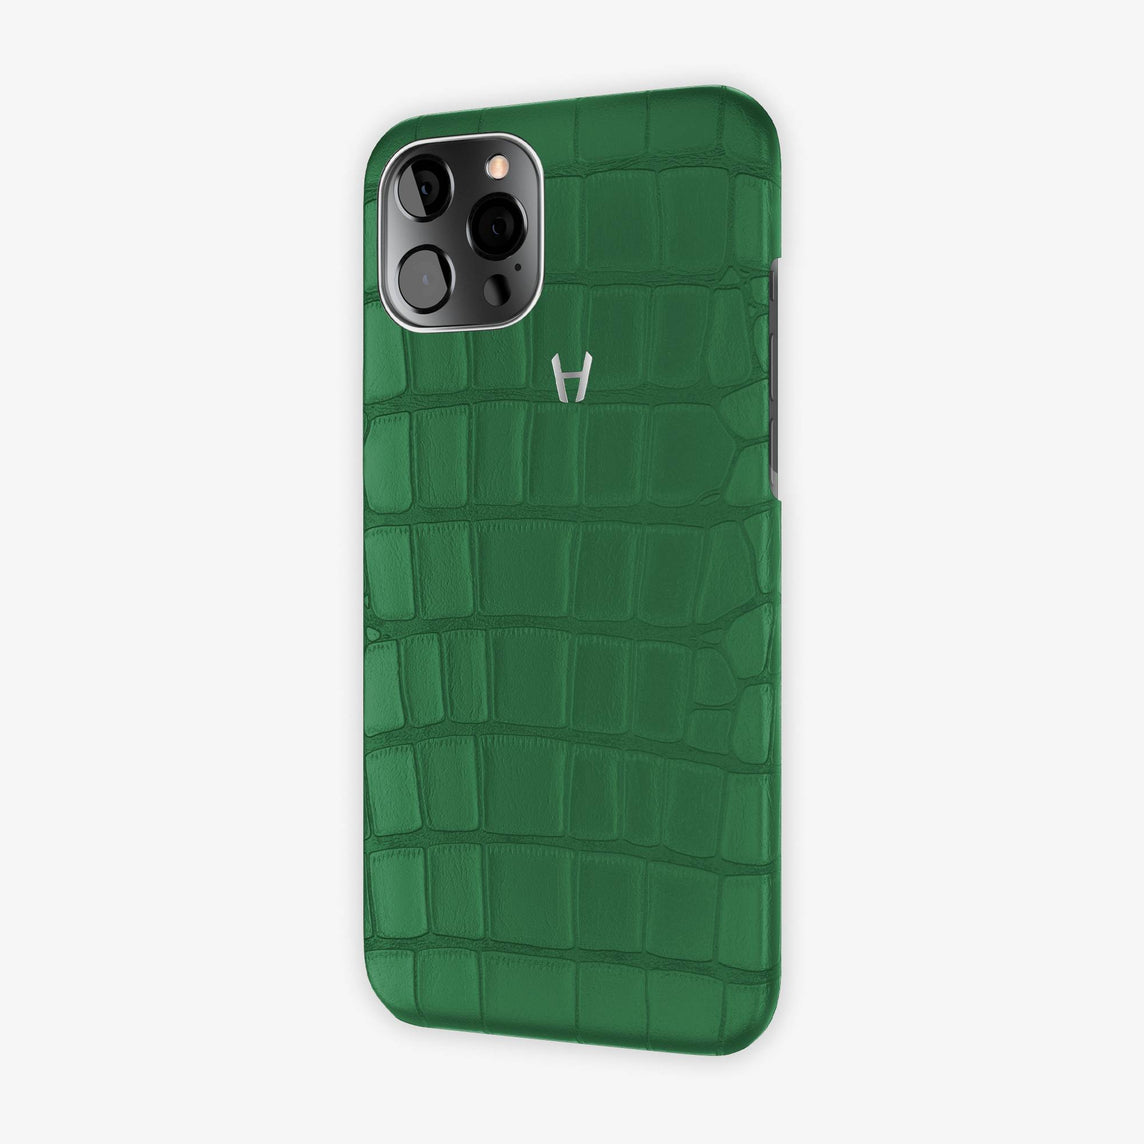 Alligator Case iPhone 12 Pro Max | Green Emerald - Stainless Steel – Hadoro  Paris